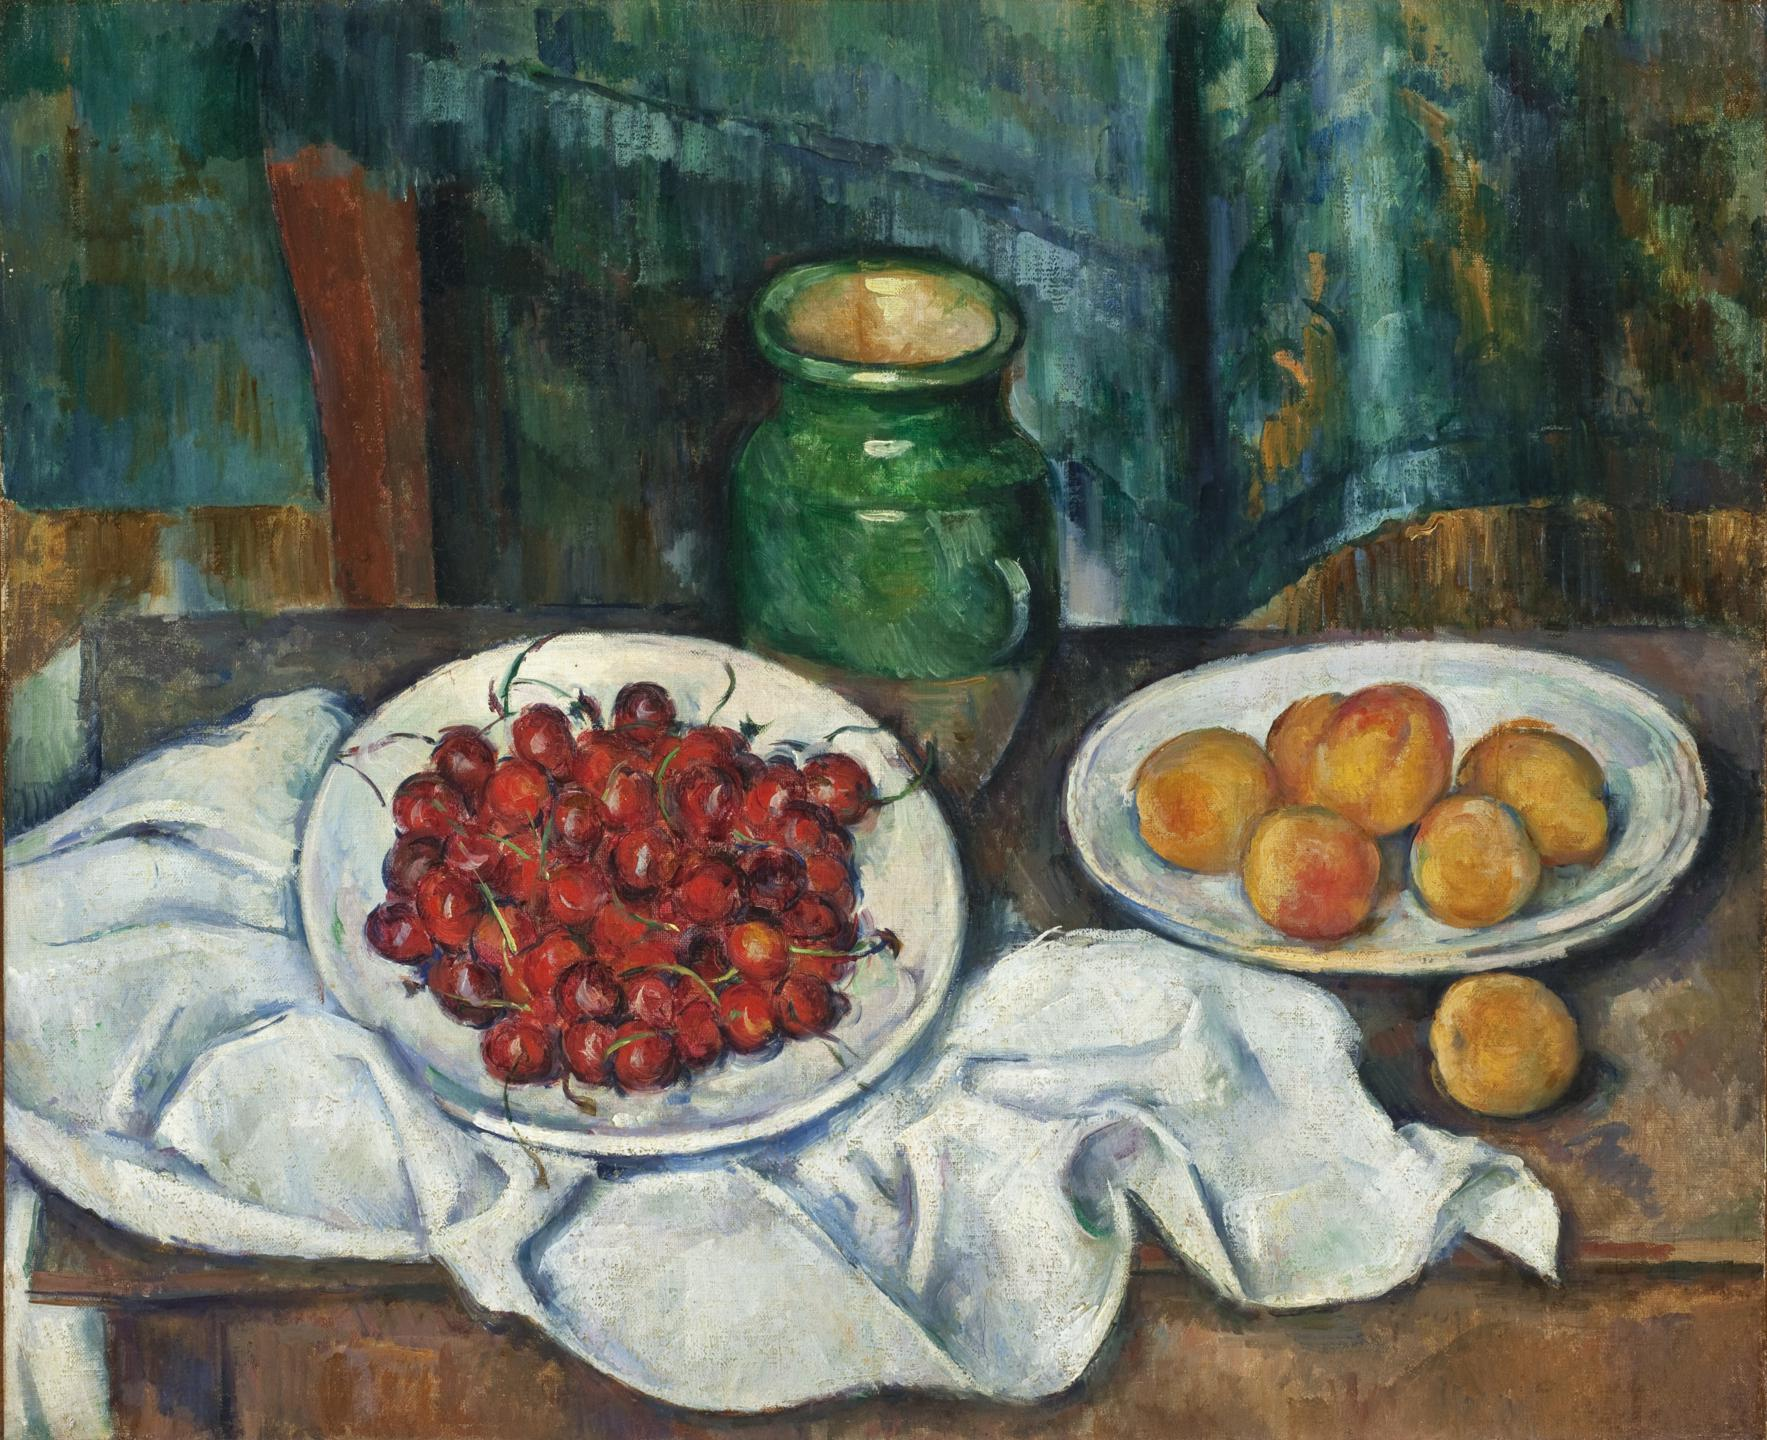 http://artblobs.com/wp-content/uploads/2015/07/Paul_Cezanne_-_Still_Life_with_Cherries_and_Peaches_1885-1887.jpg